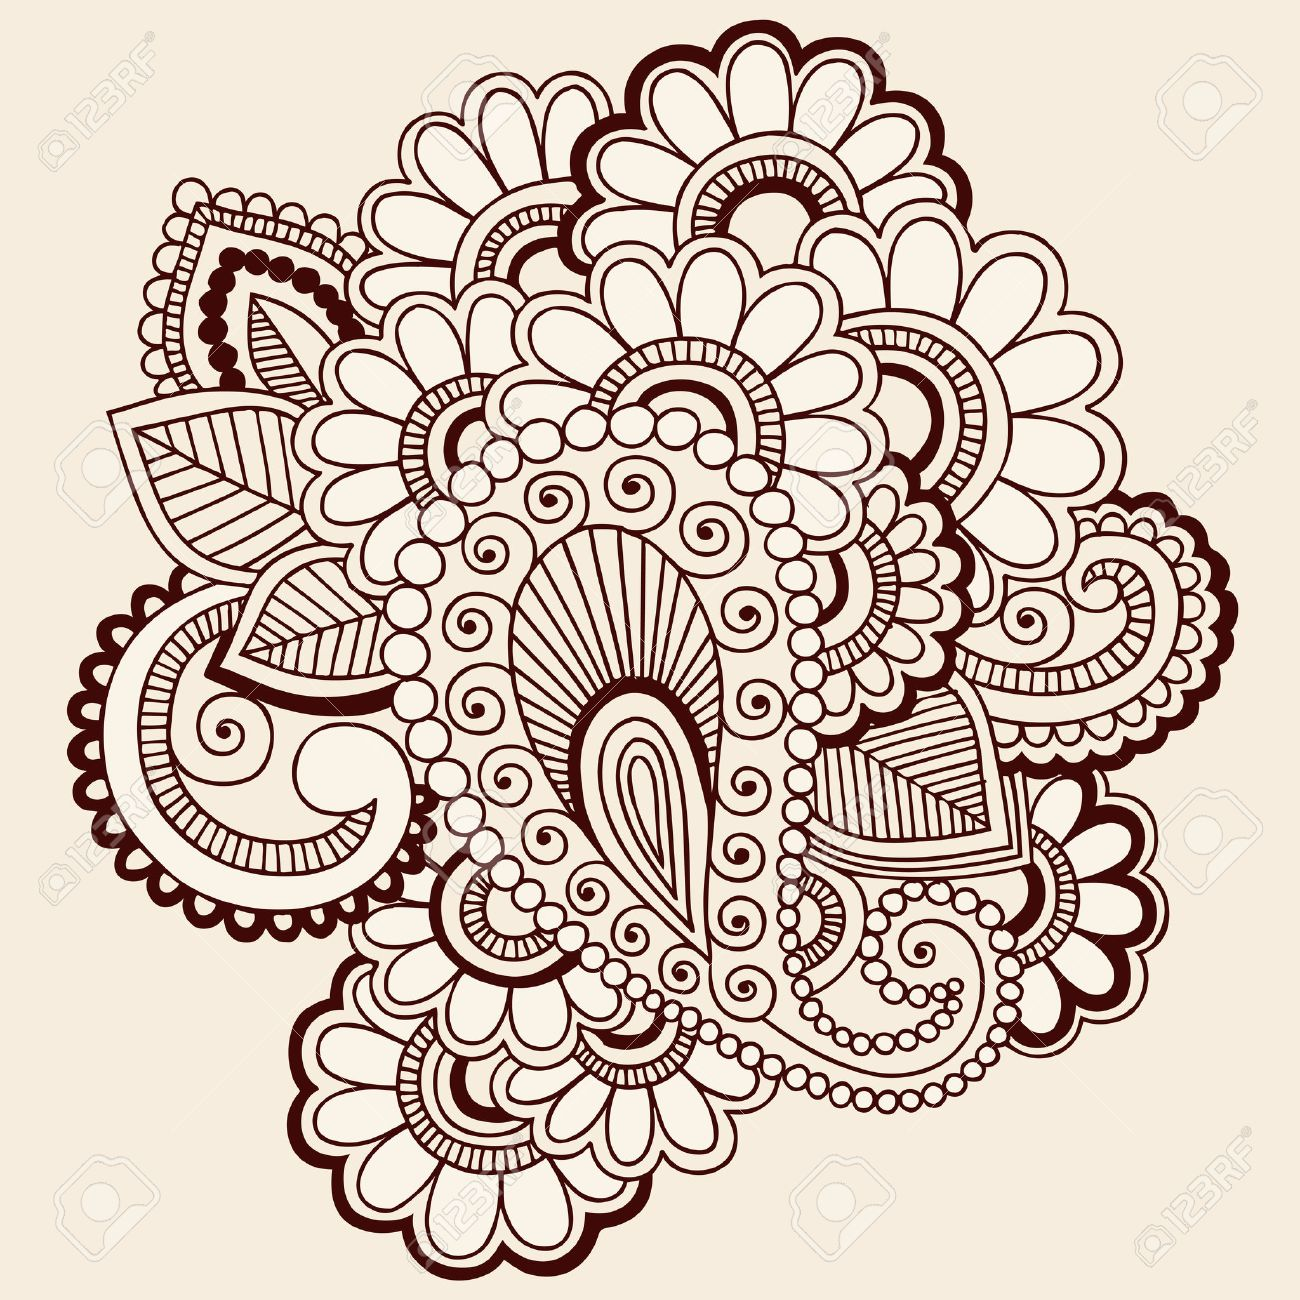 Handdrawn Intricate Abstract Flowers Mehndi Henna Tattoo Paisley Doodle  Stock Vector  6807576